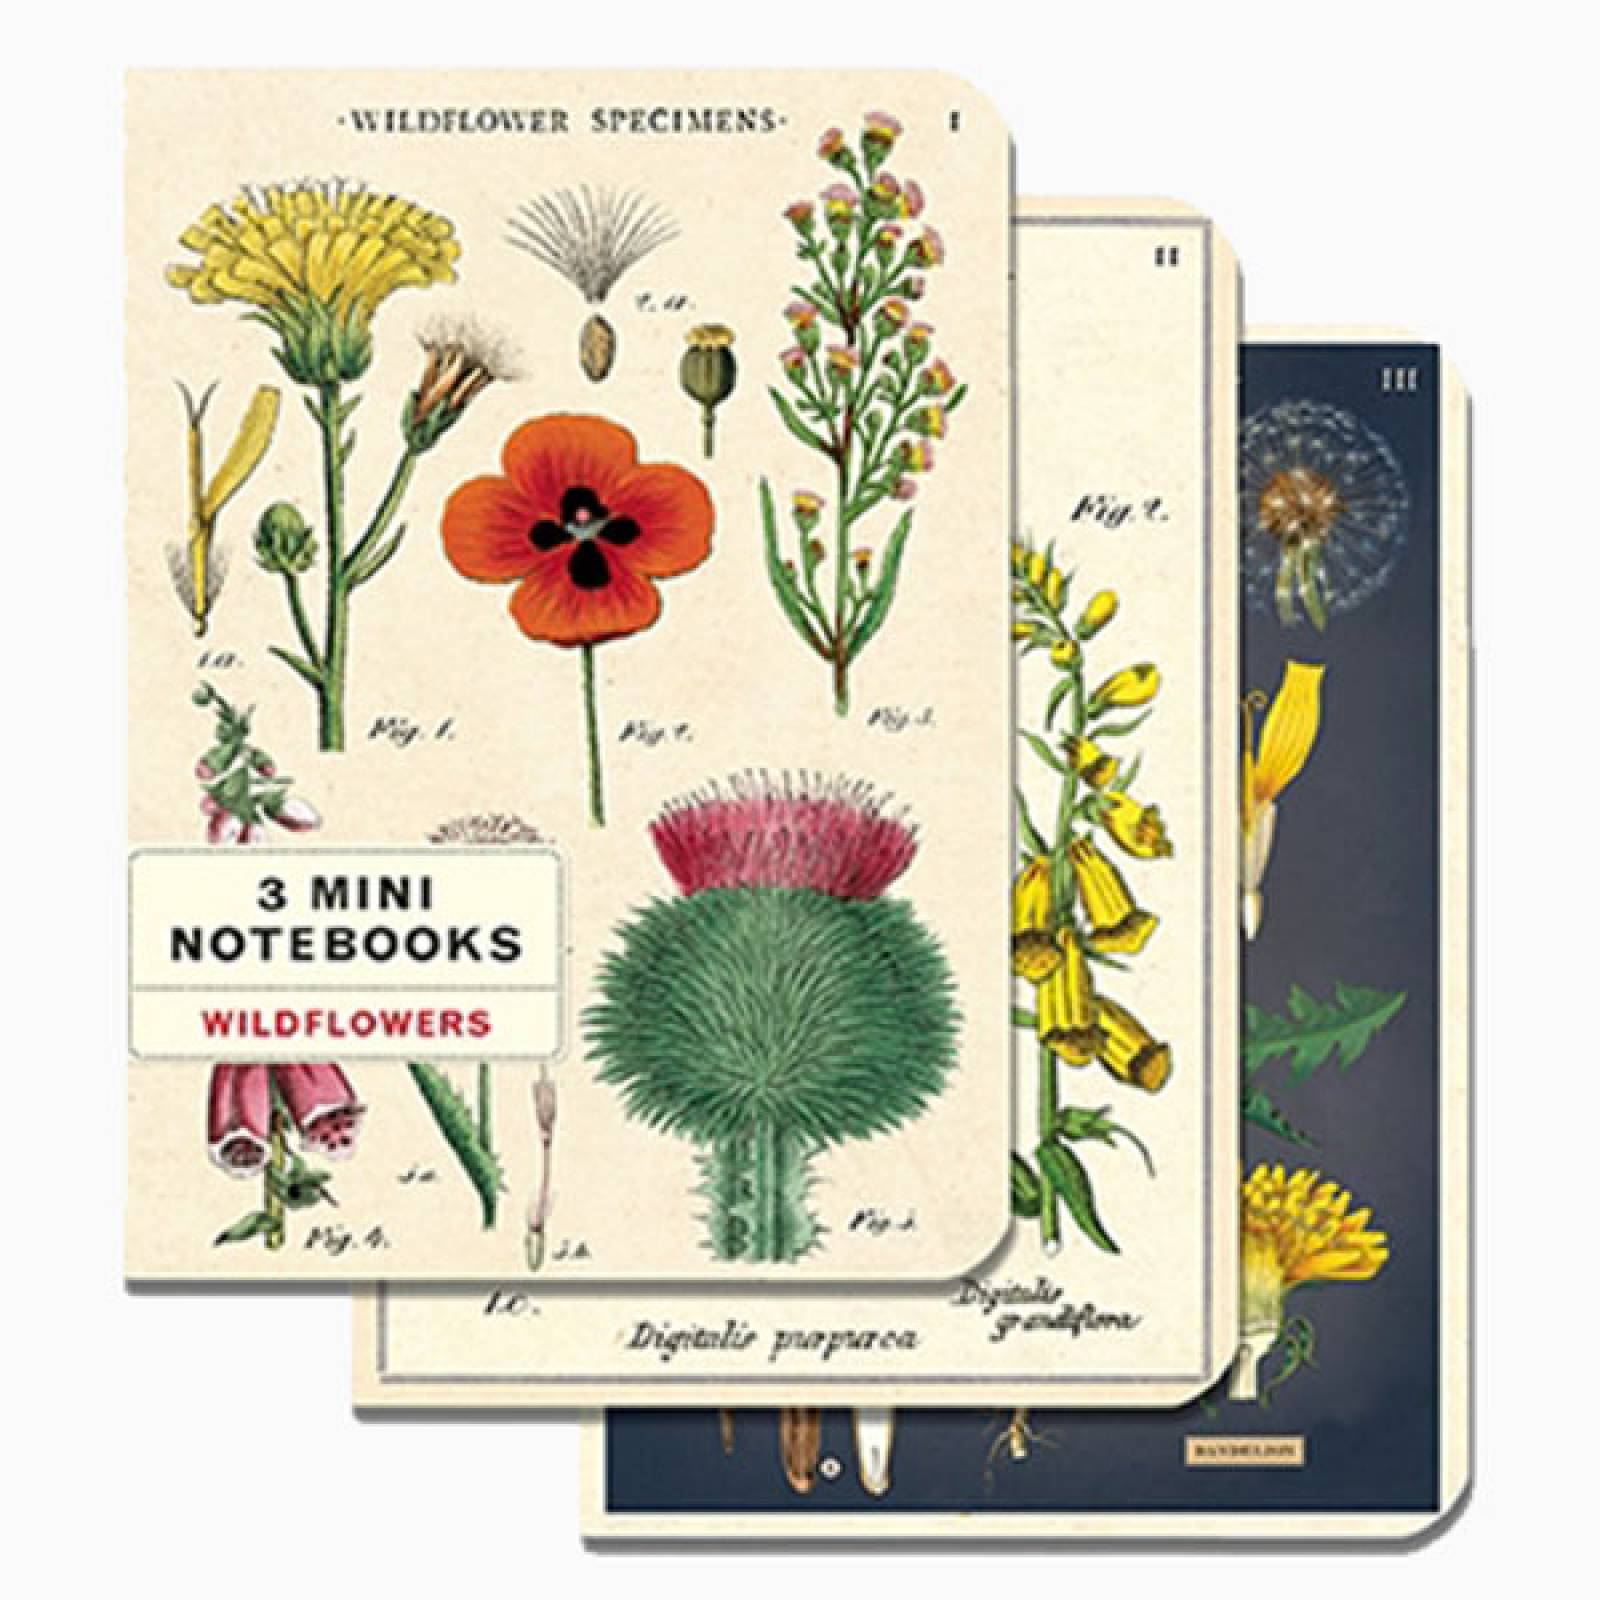 Set Of 3 Mini Notebooks - Wildflowers thumbnails